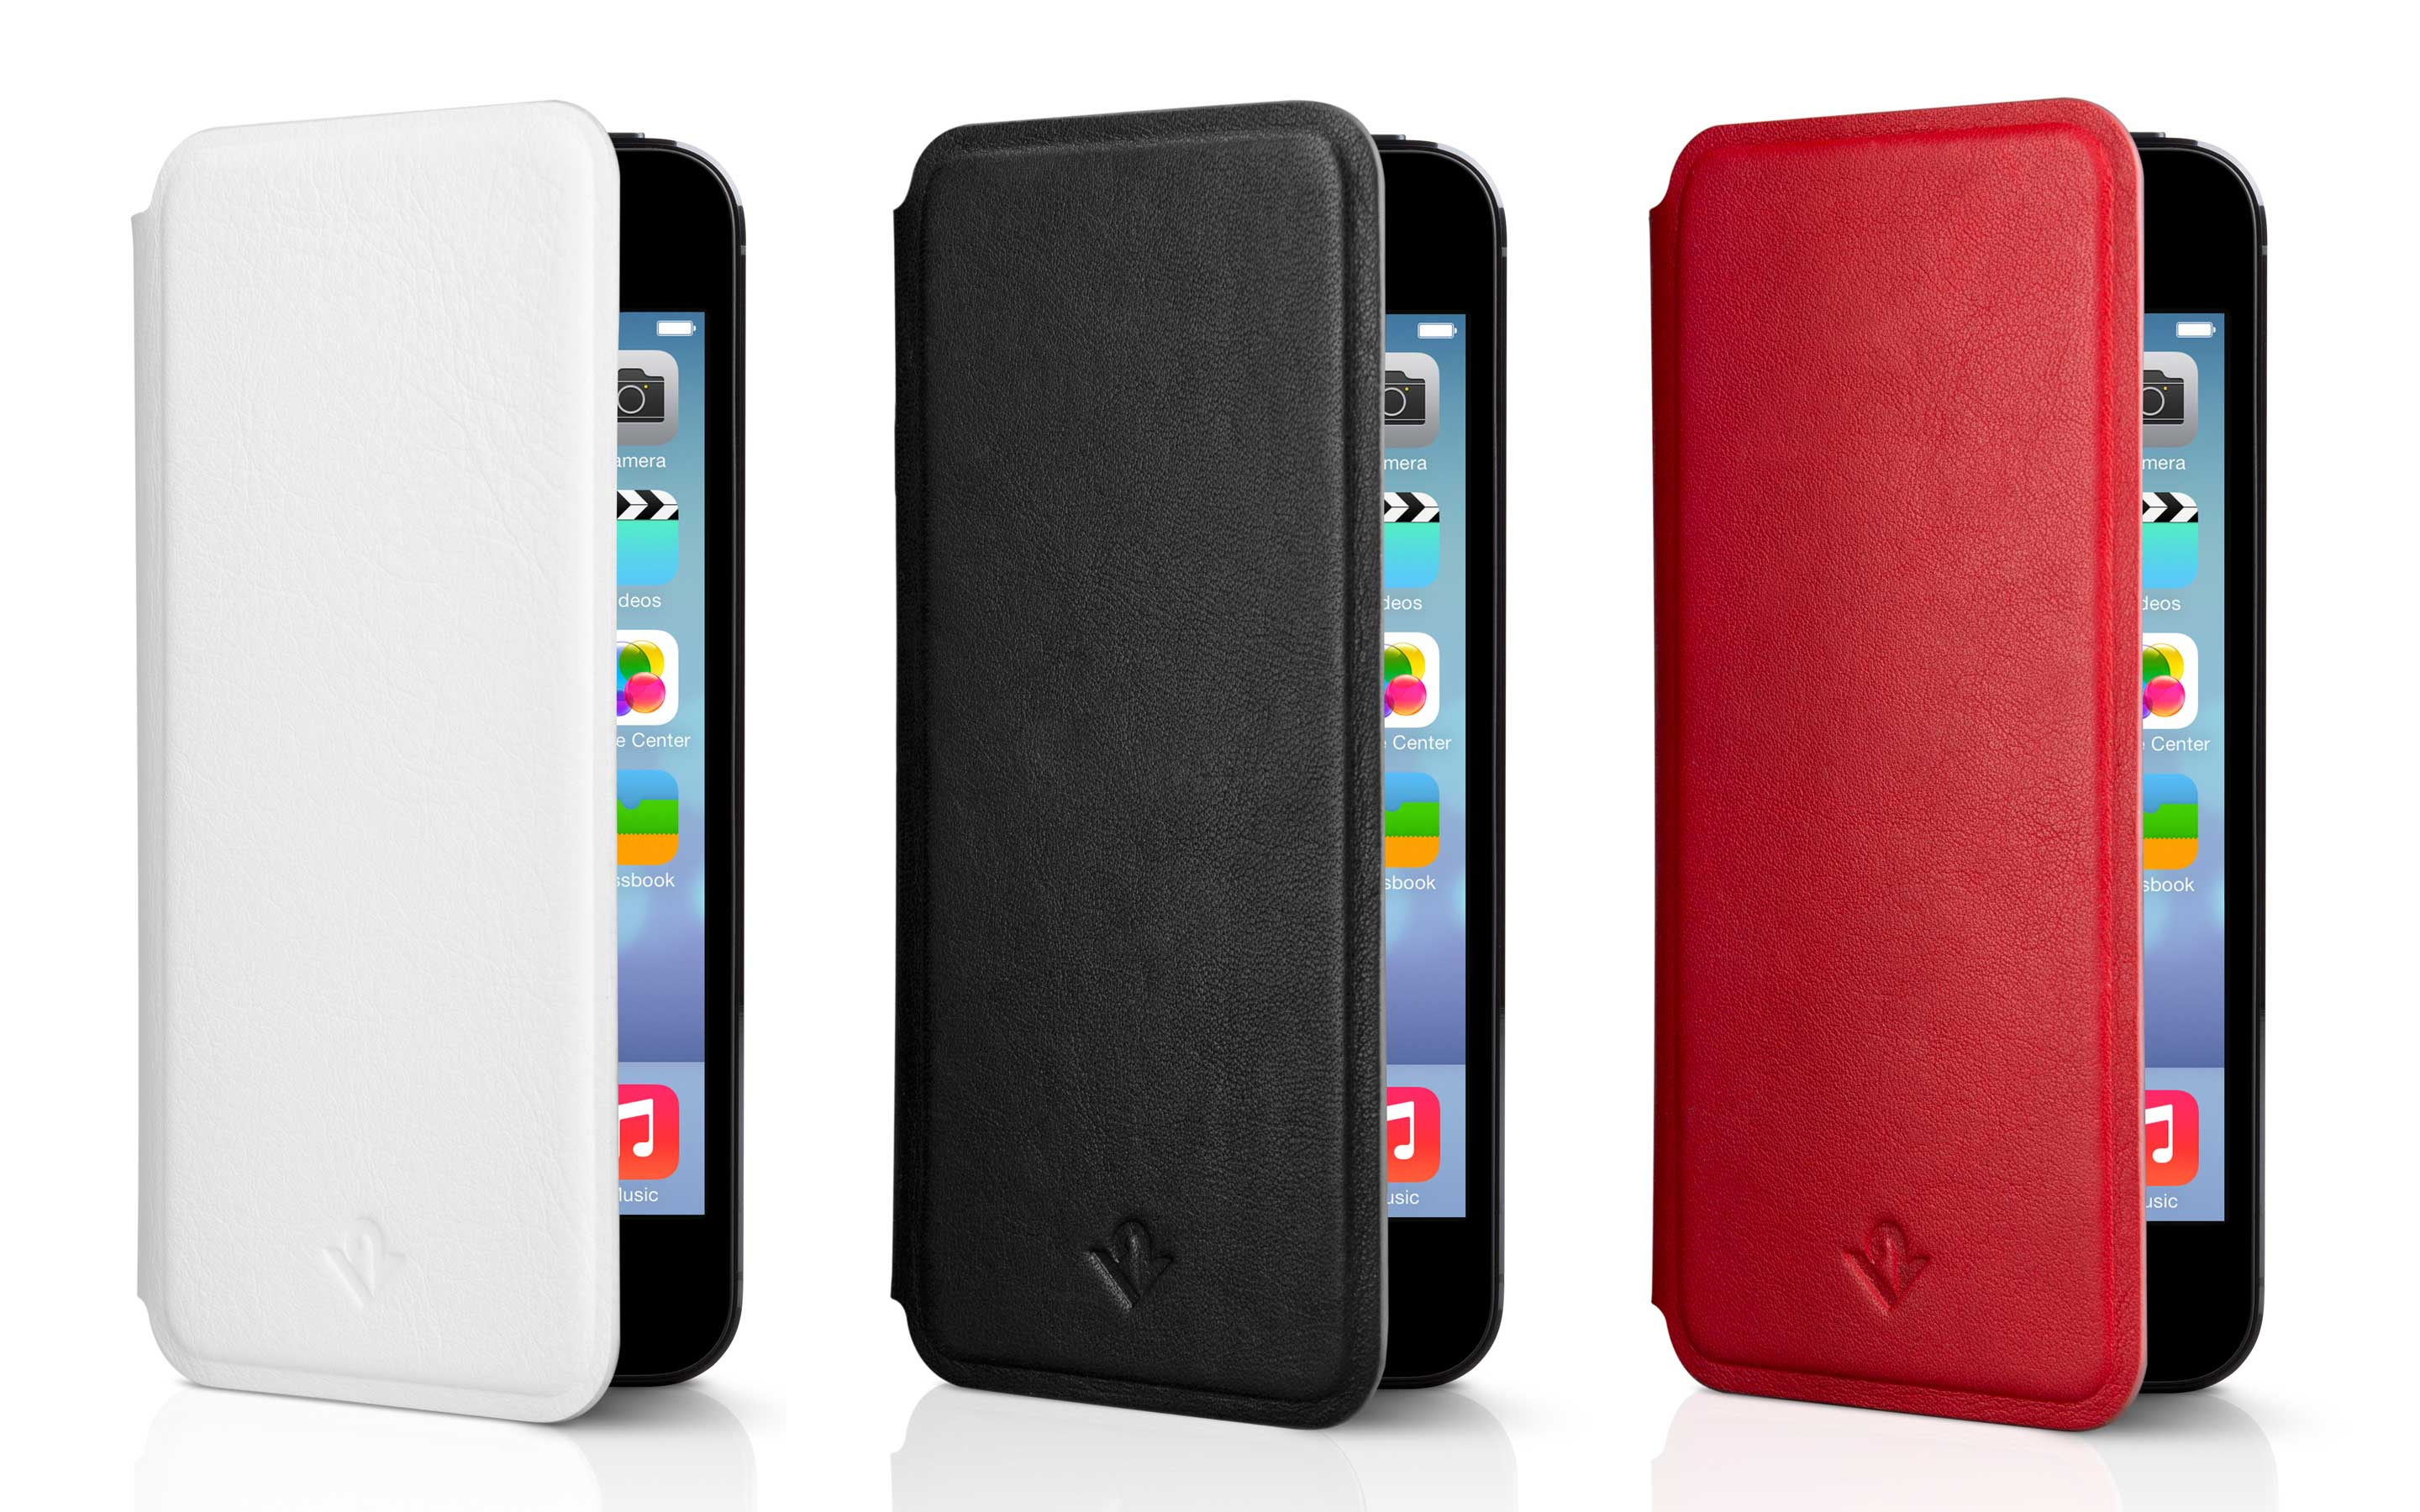 Featuring 2 card slots, built-in stand & microfiber - Twelve South SurfacePad suits iPhone 6 Plus!